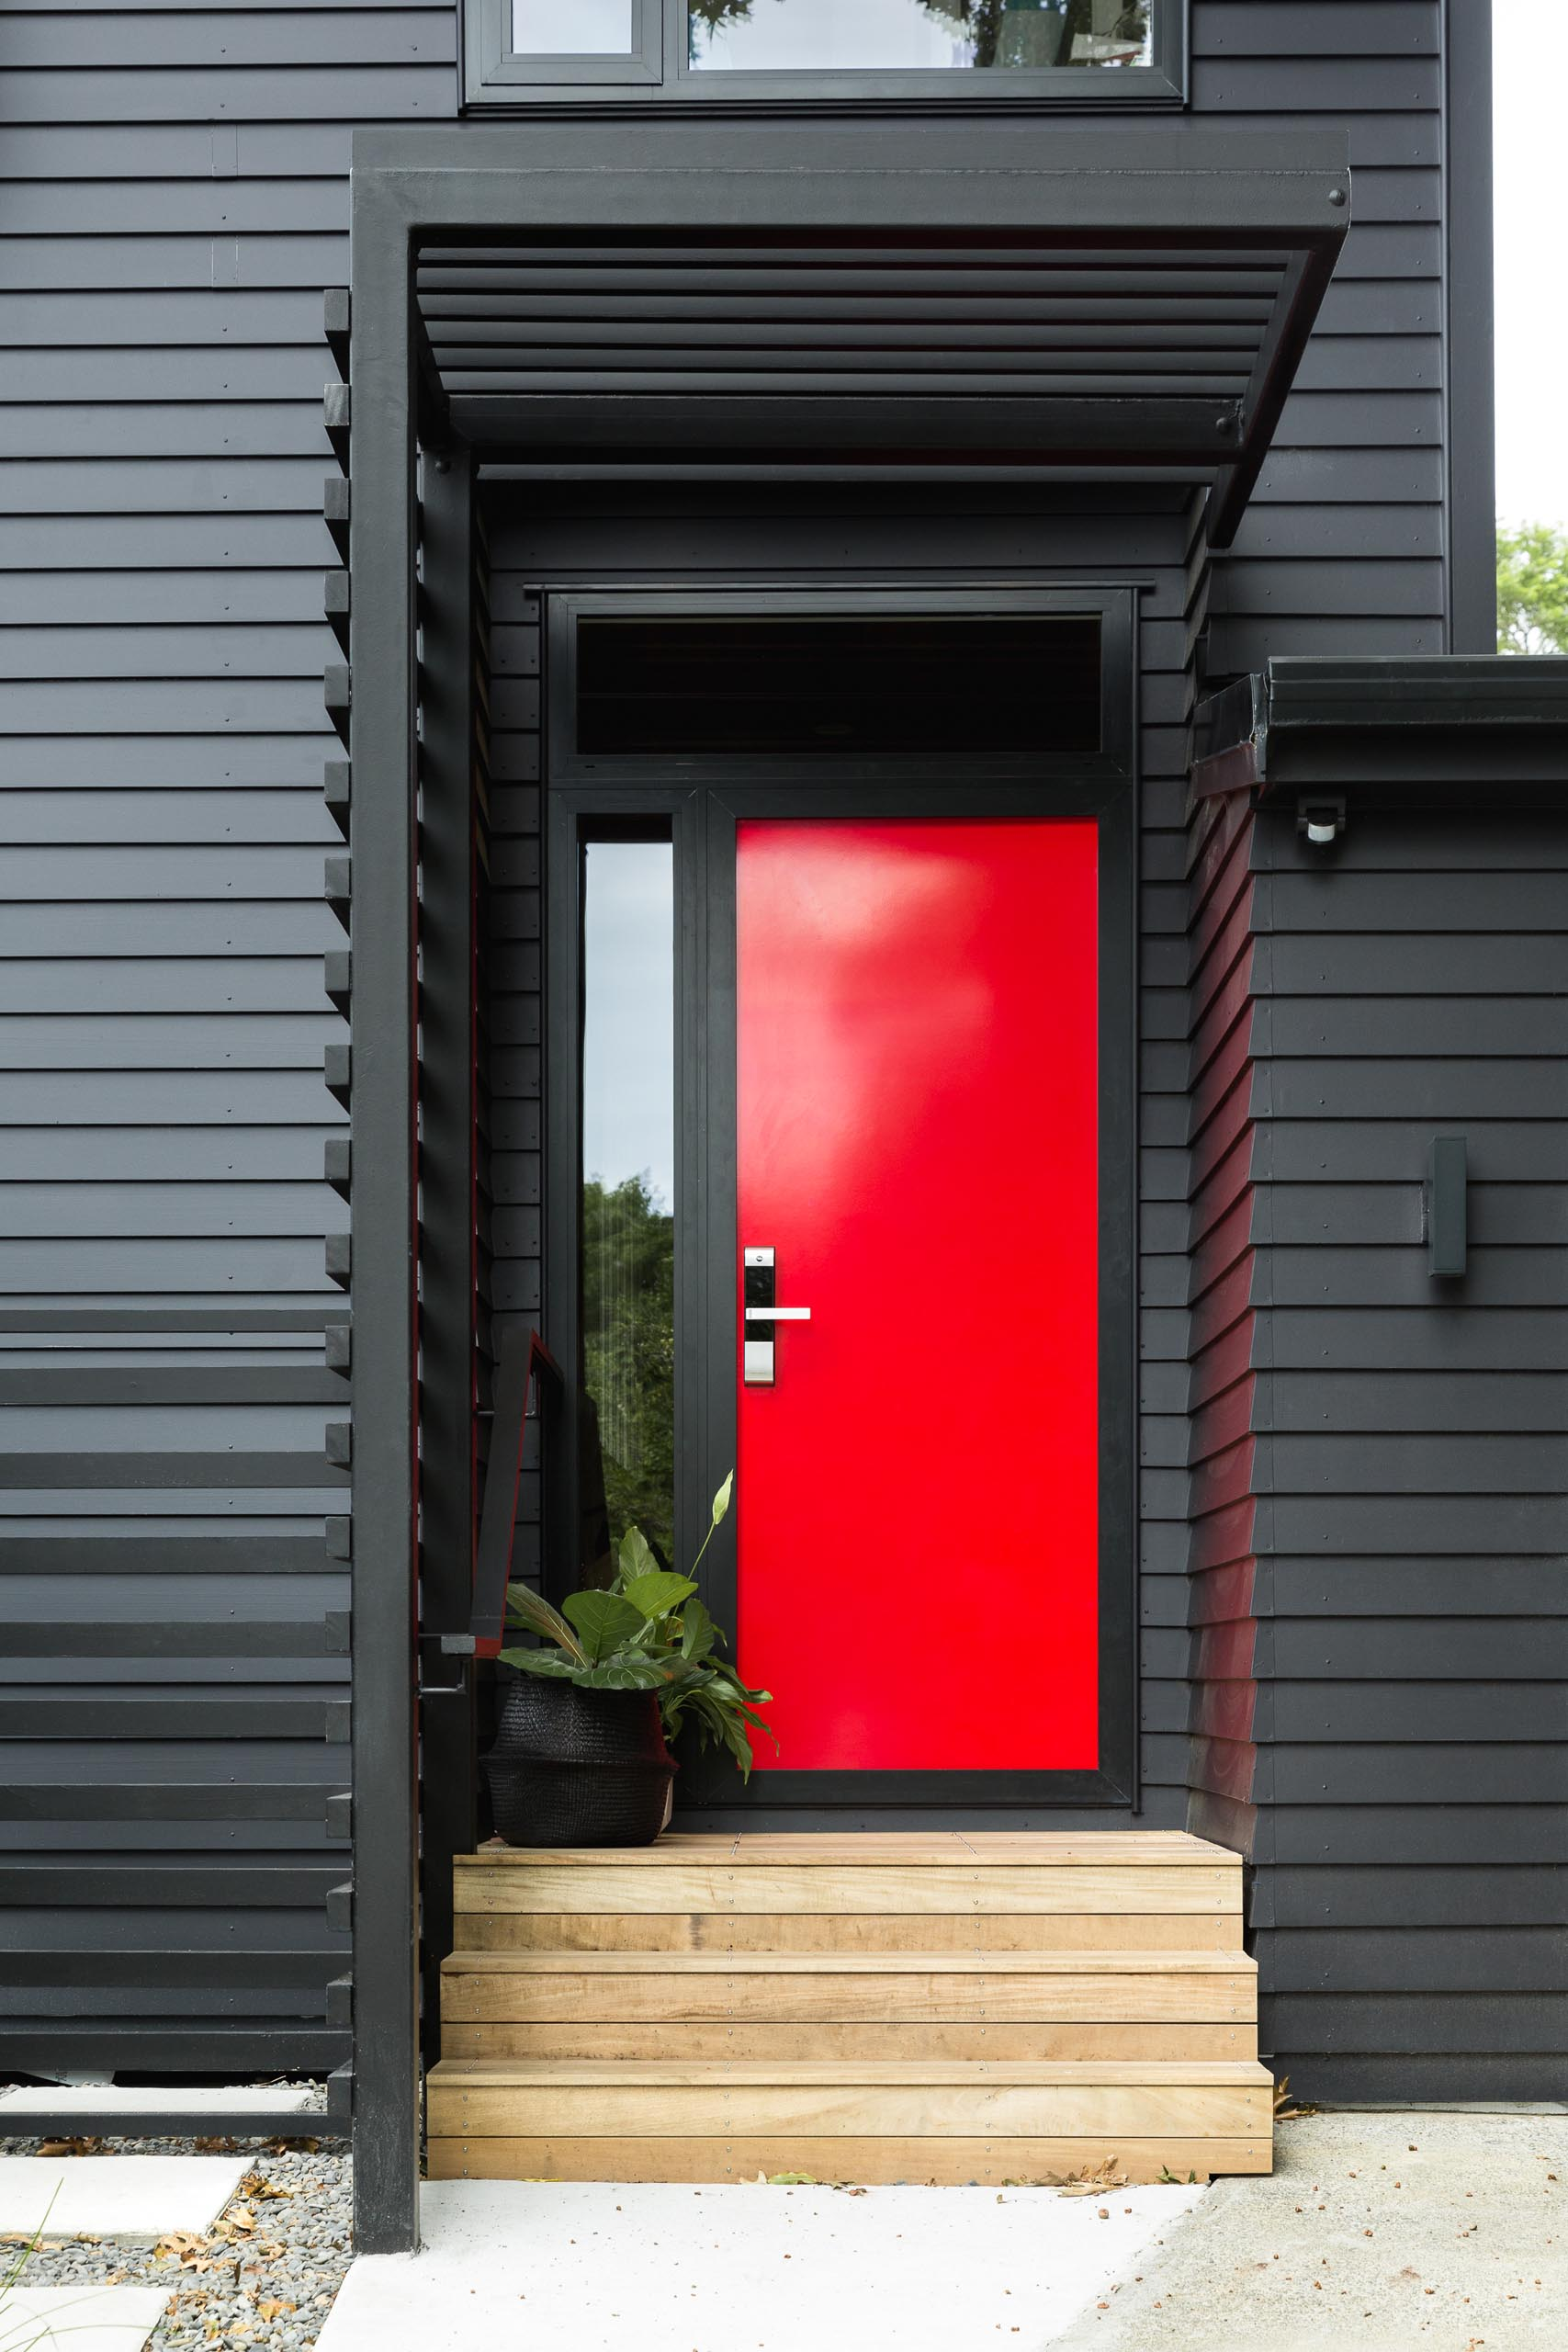 This modern house is in cedar weatherboards, and painted black creating a bold exterior, while the bright red door adds a strong contrasting design element.